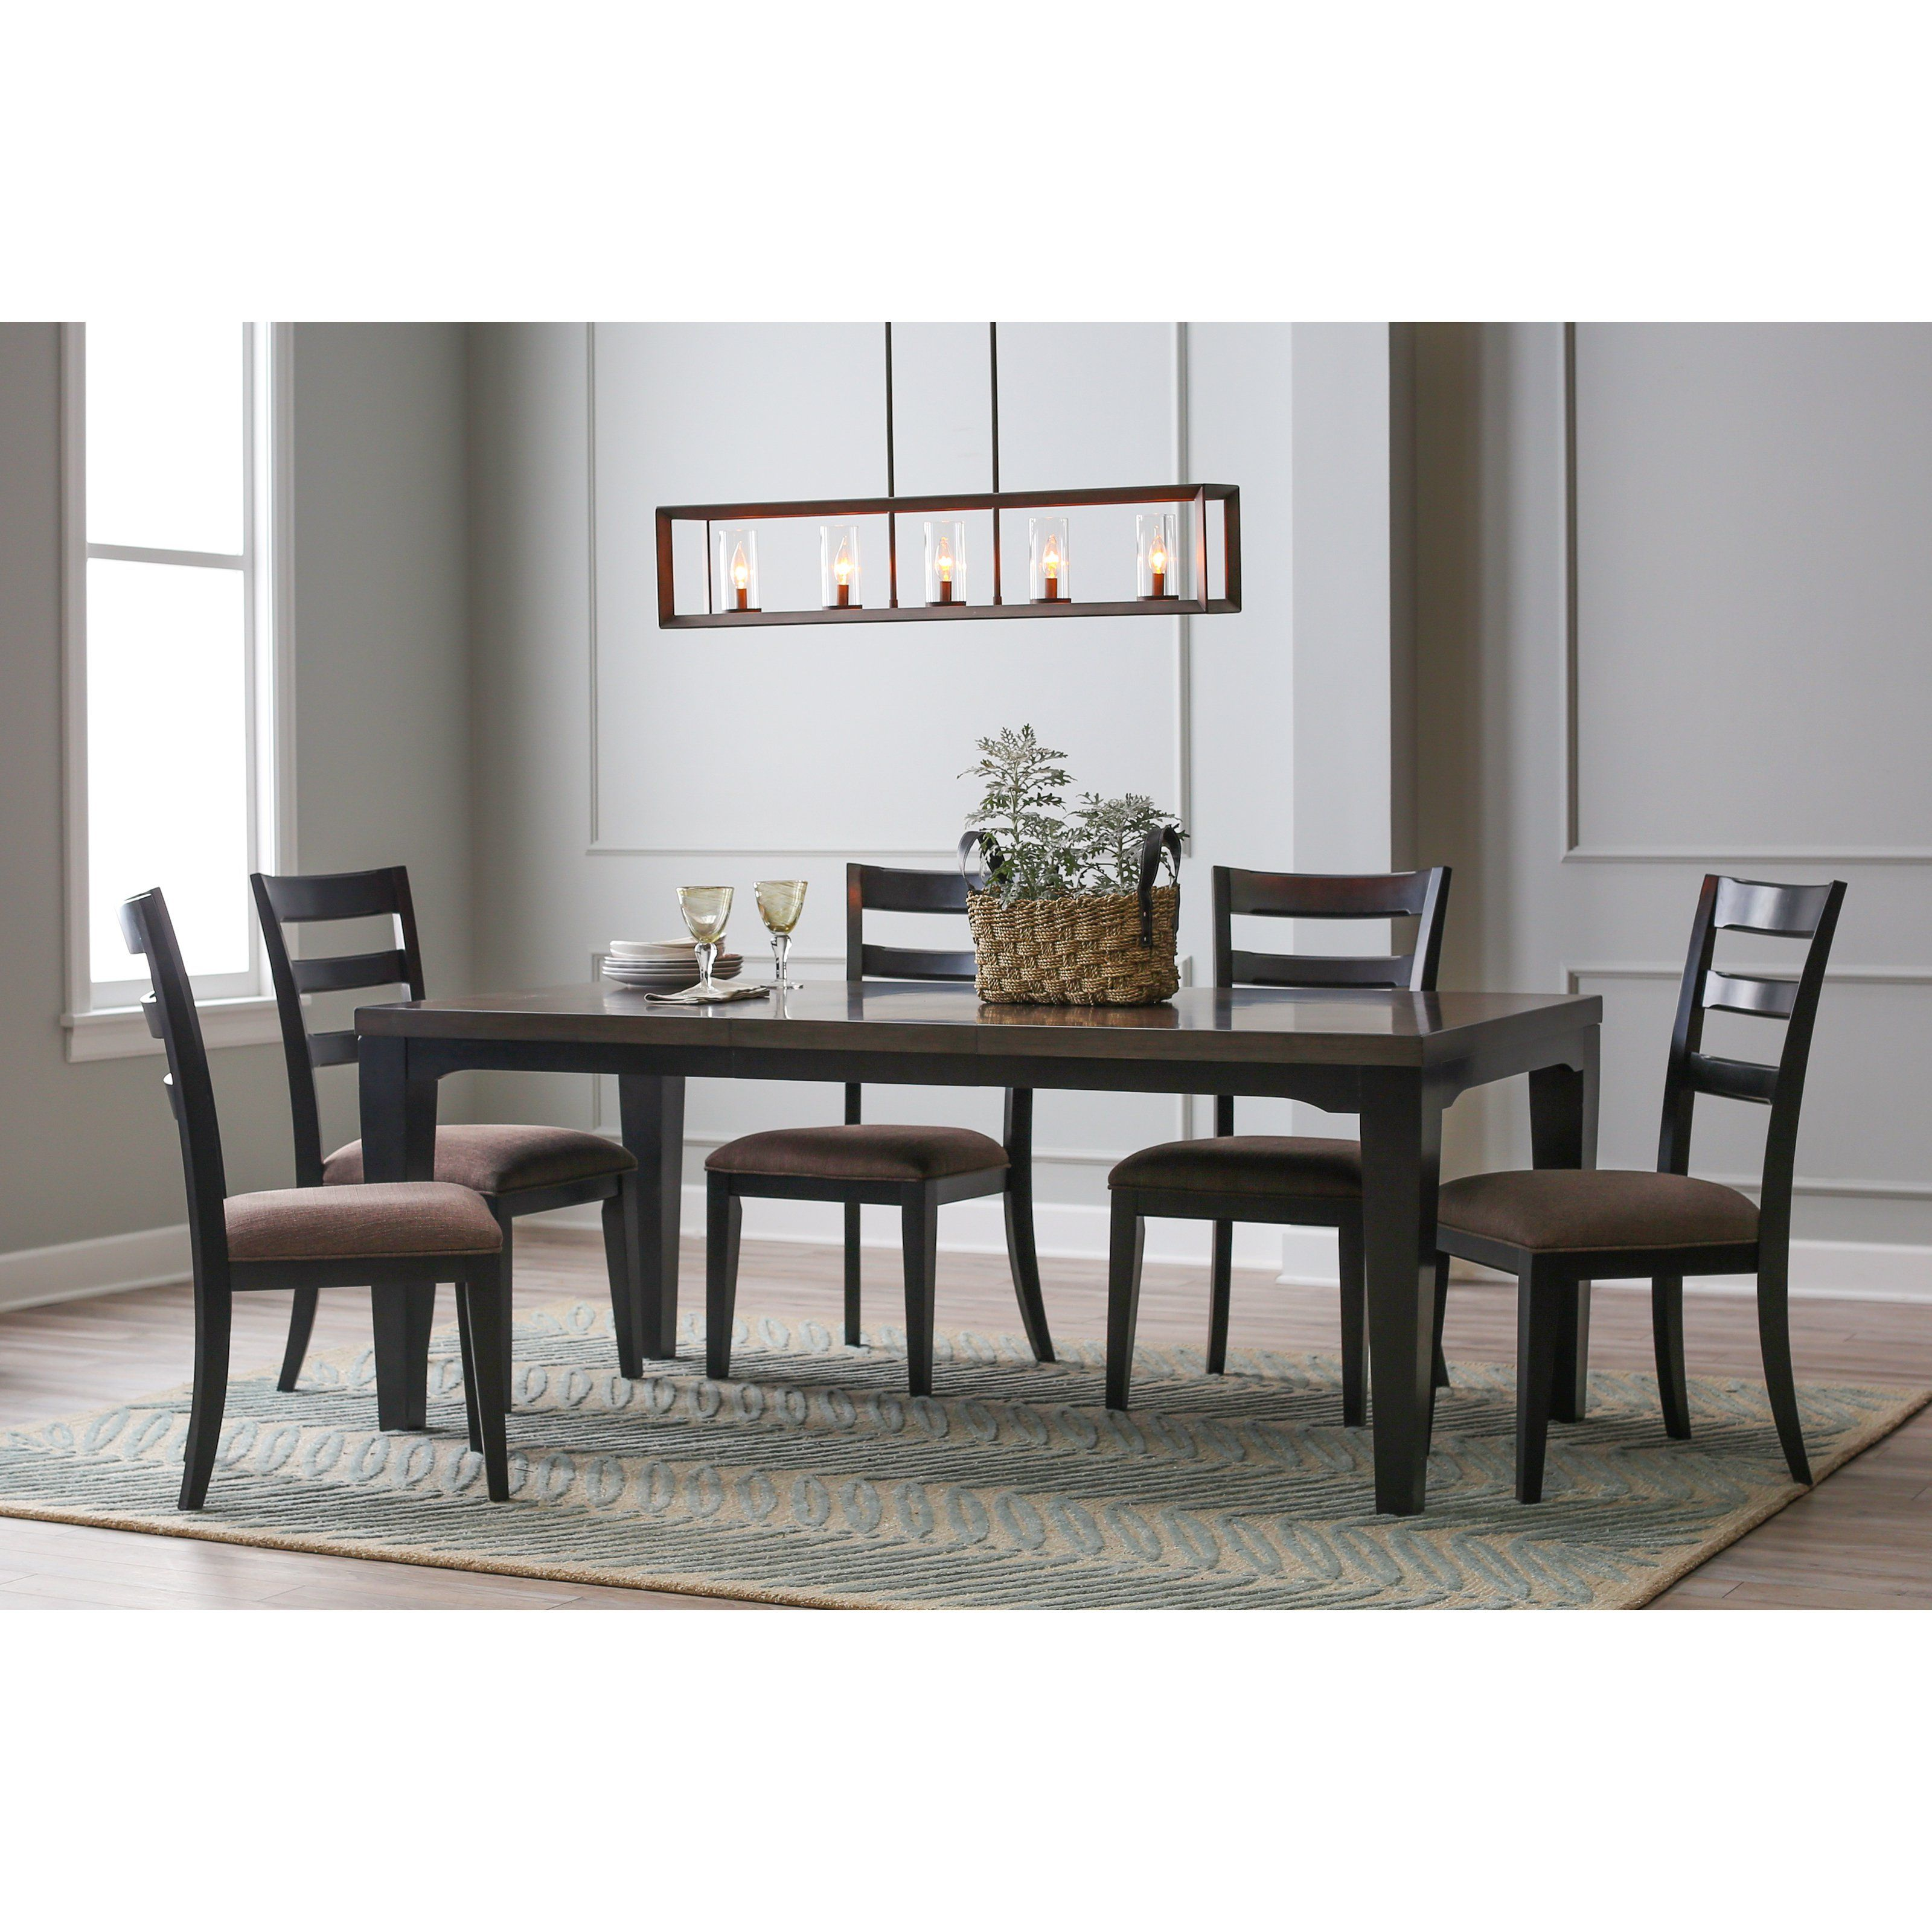 Belham living sheridan extension dining room table from hayneedle com